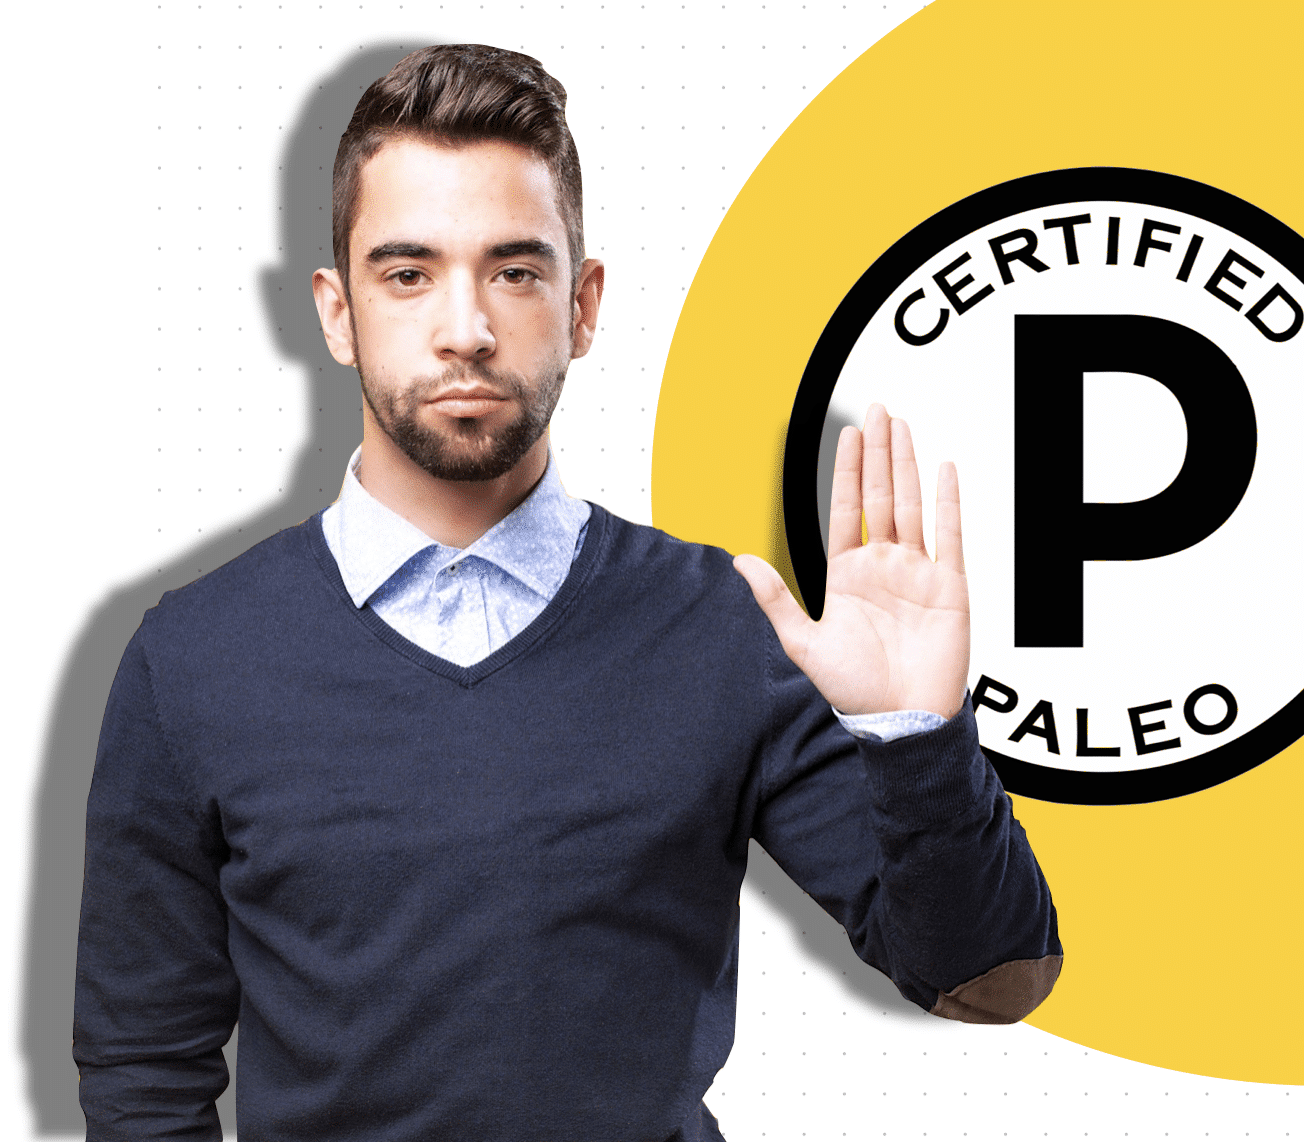 increase brand trust and awareness with paleo certification